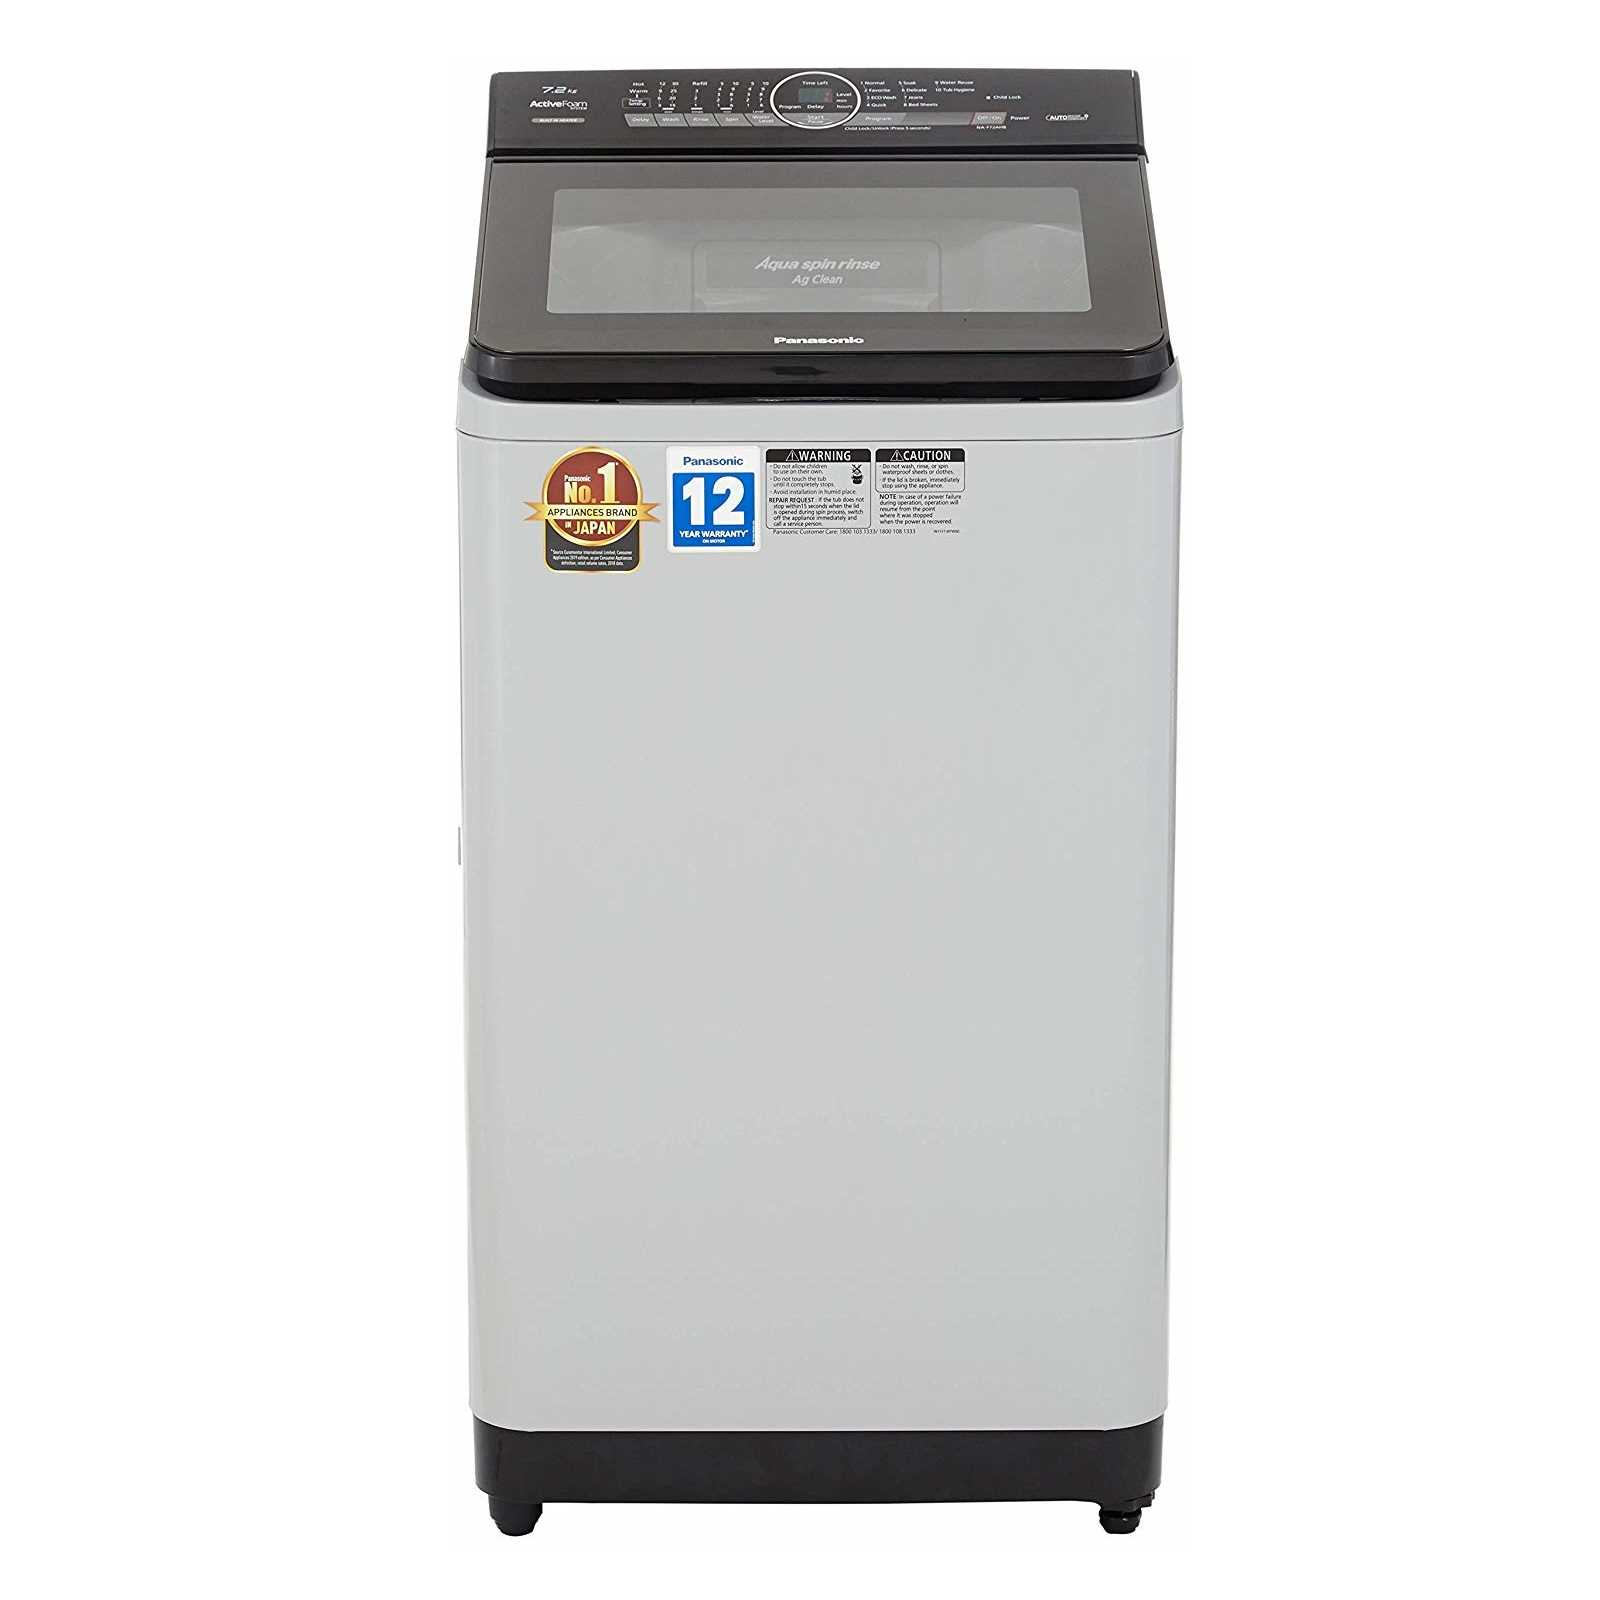 Panasonic NA F72AH8 7.2 Kg Fully Automatic Top Loading Washing Machine